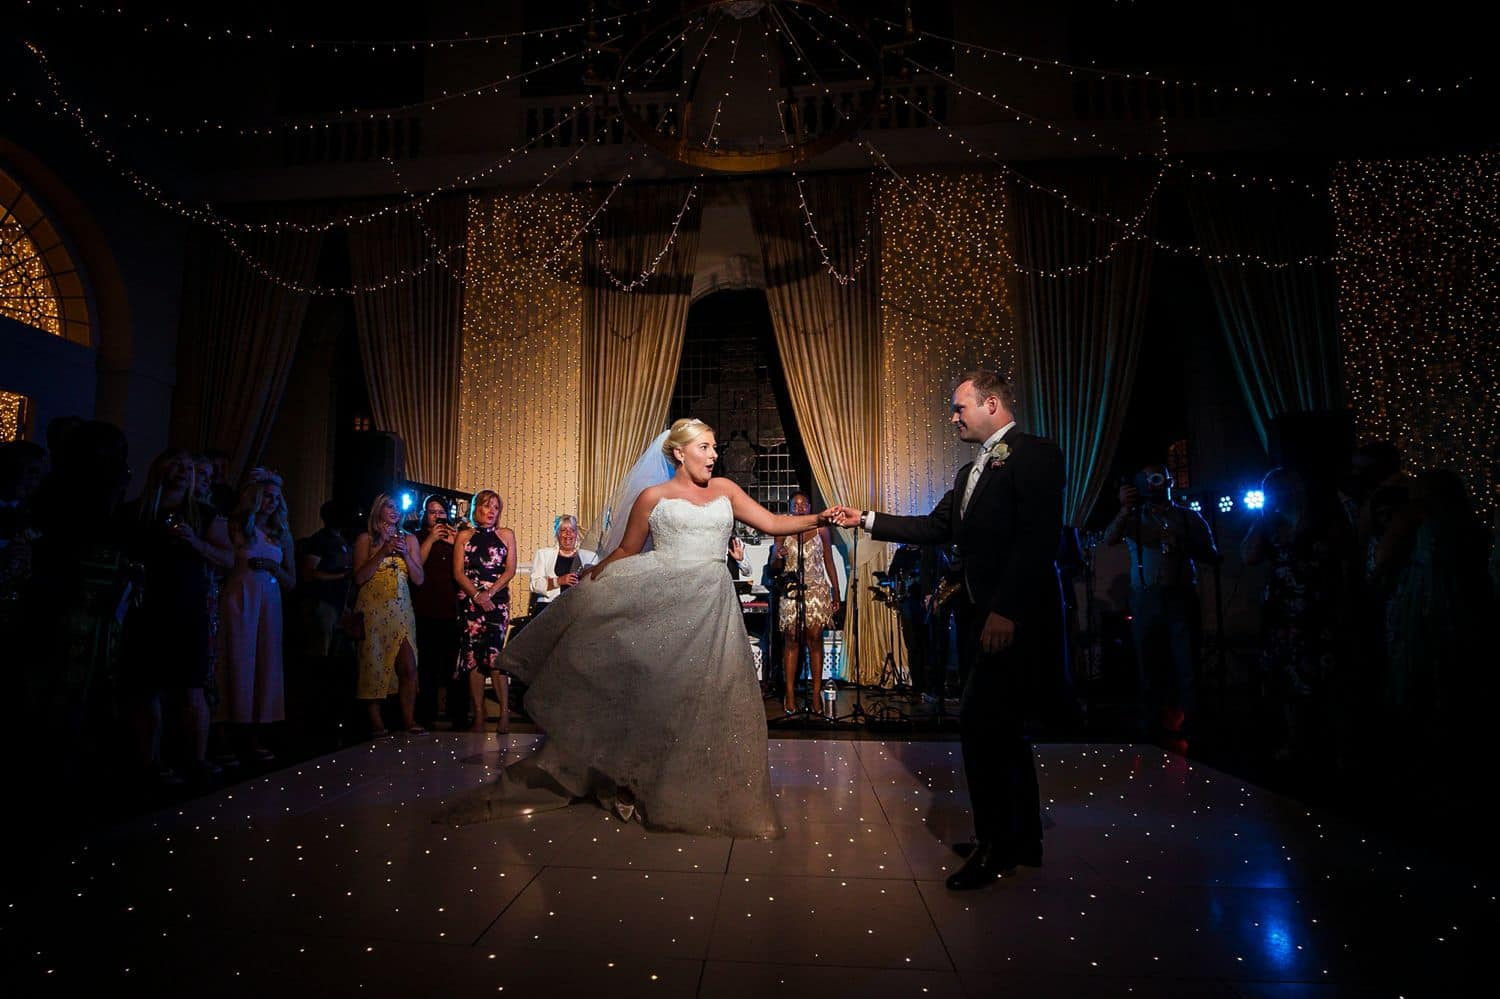 A bride and groom dance elegantly on a ballroom dance floor